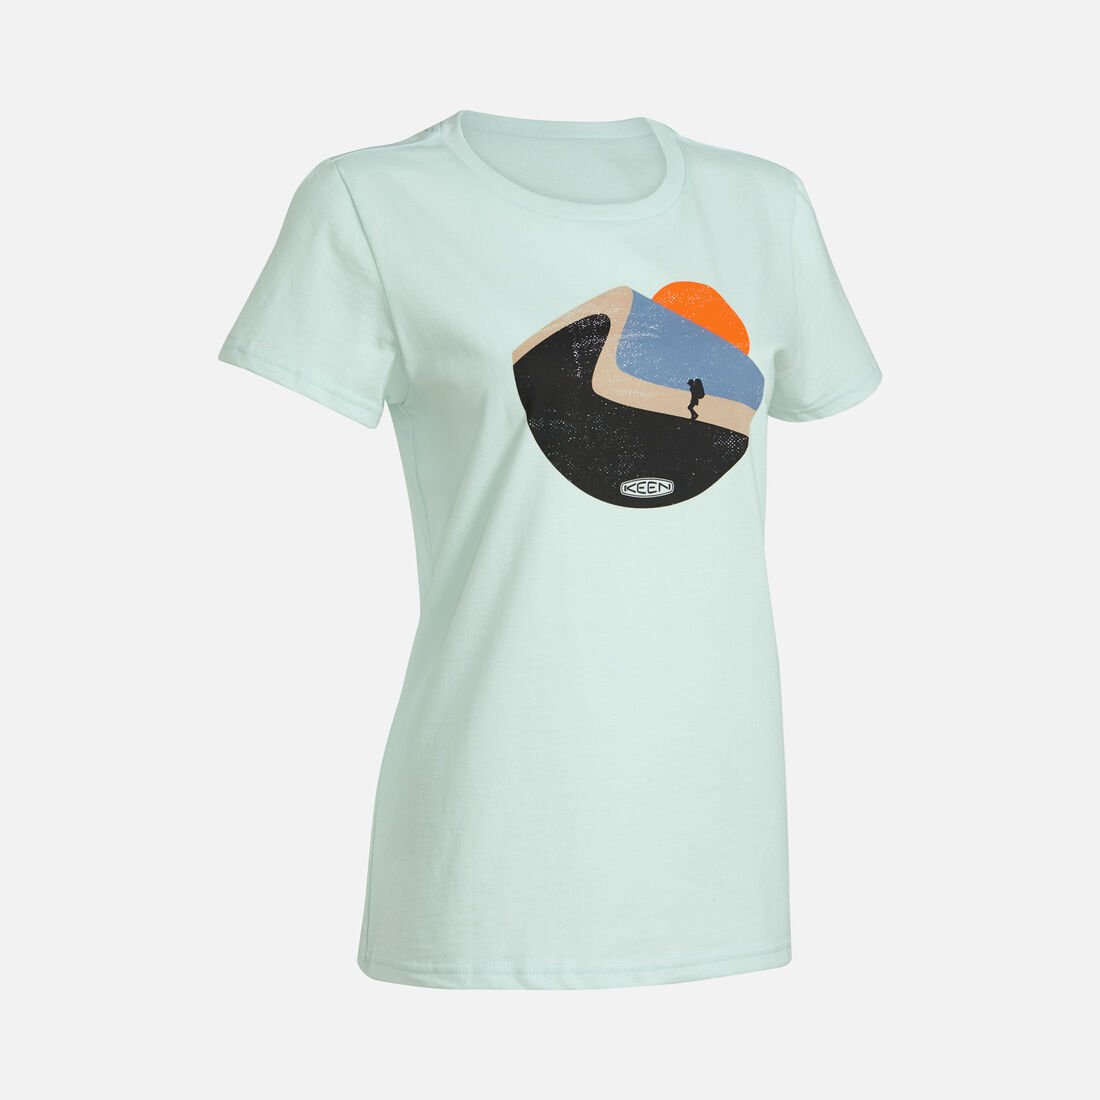 Women's Hike More Tee in Whispering Blue - large view.